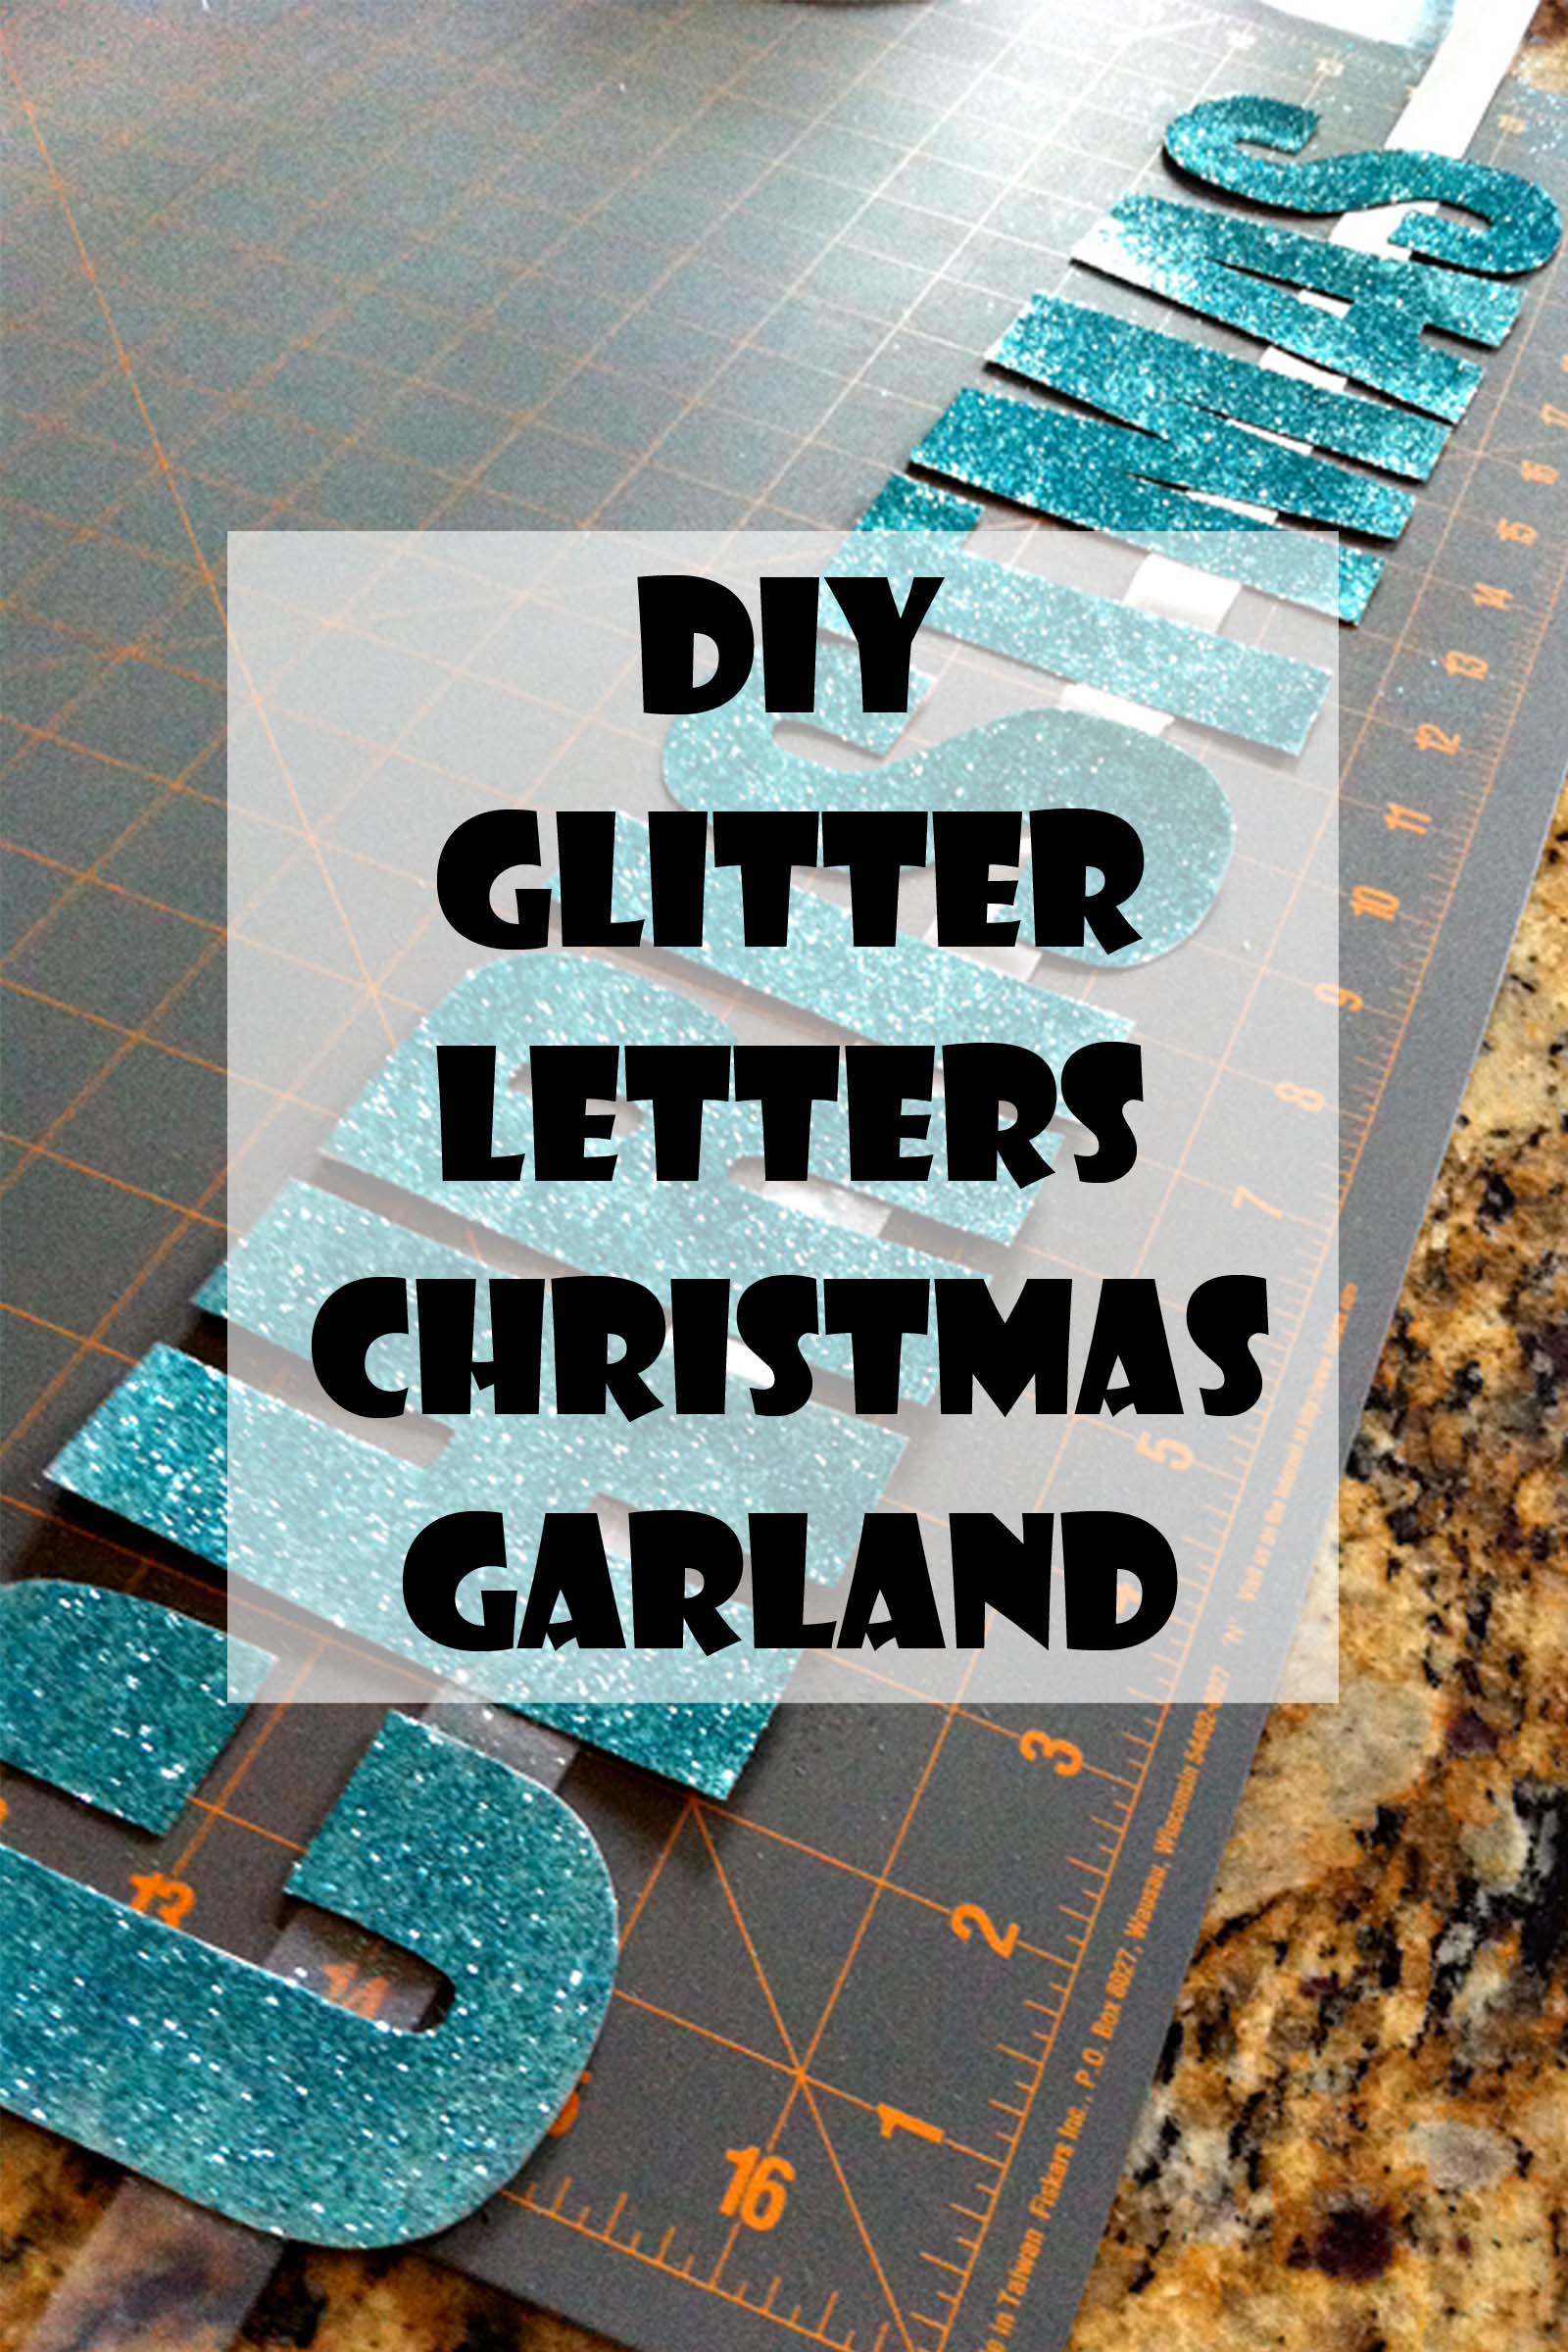 DIY Glitter Letters Christmas Garland